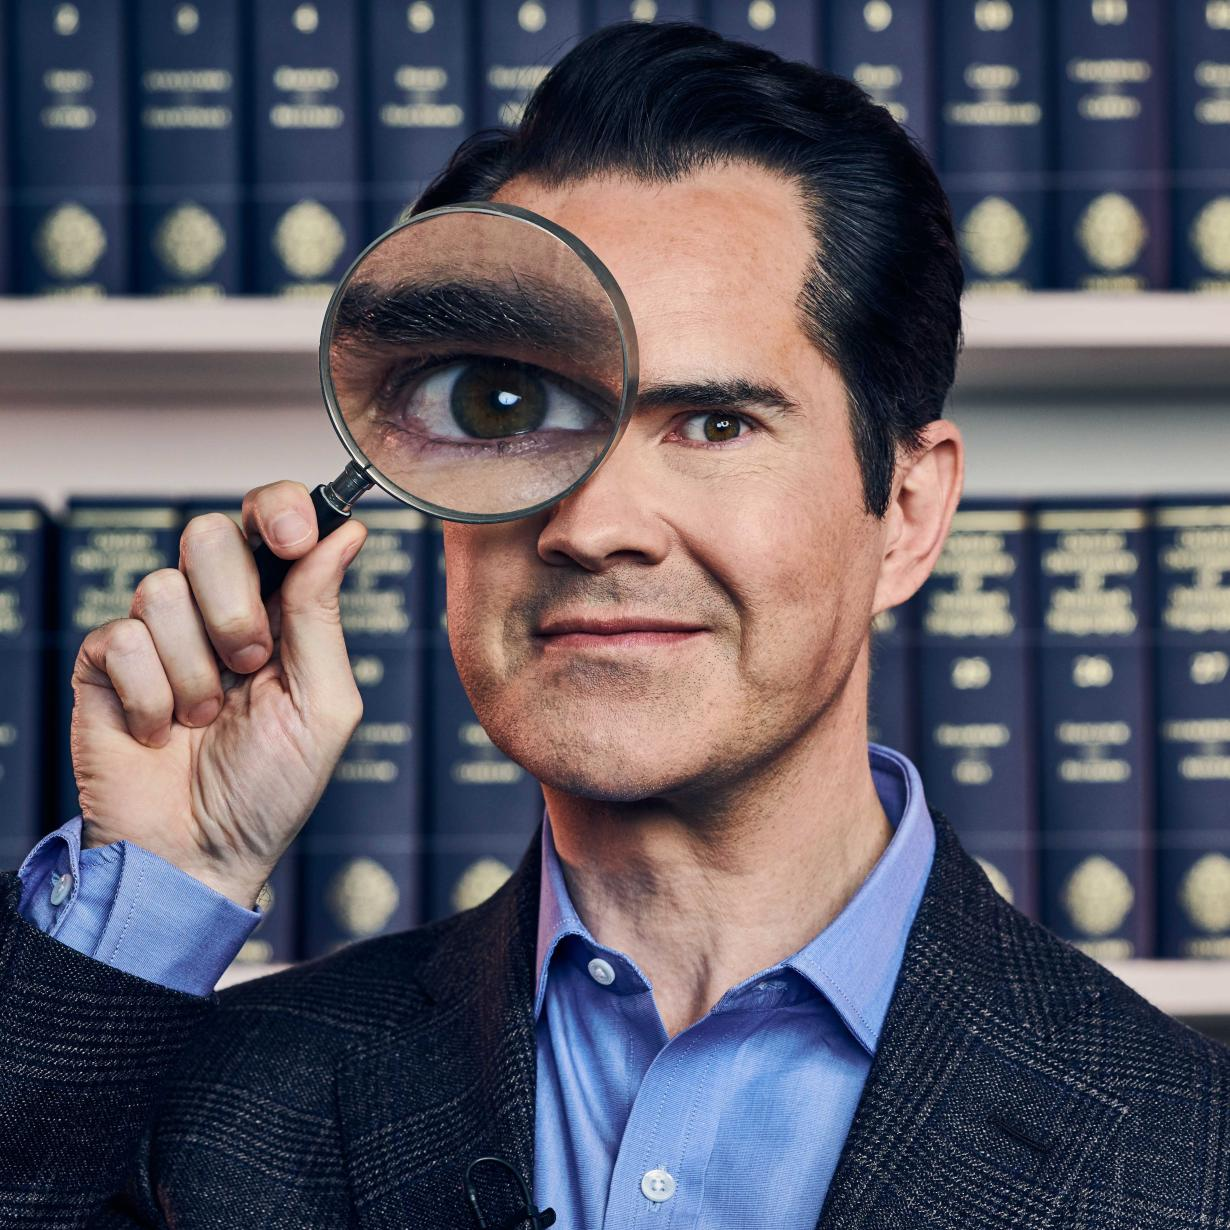 Jimmy Carr looking through a magnifying glass.